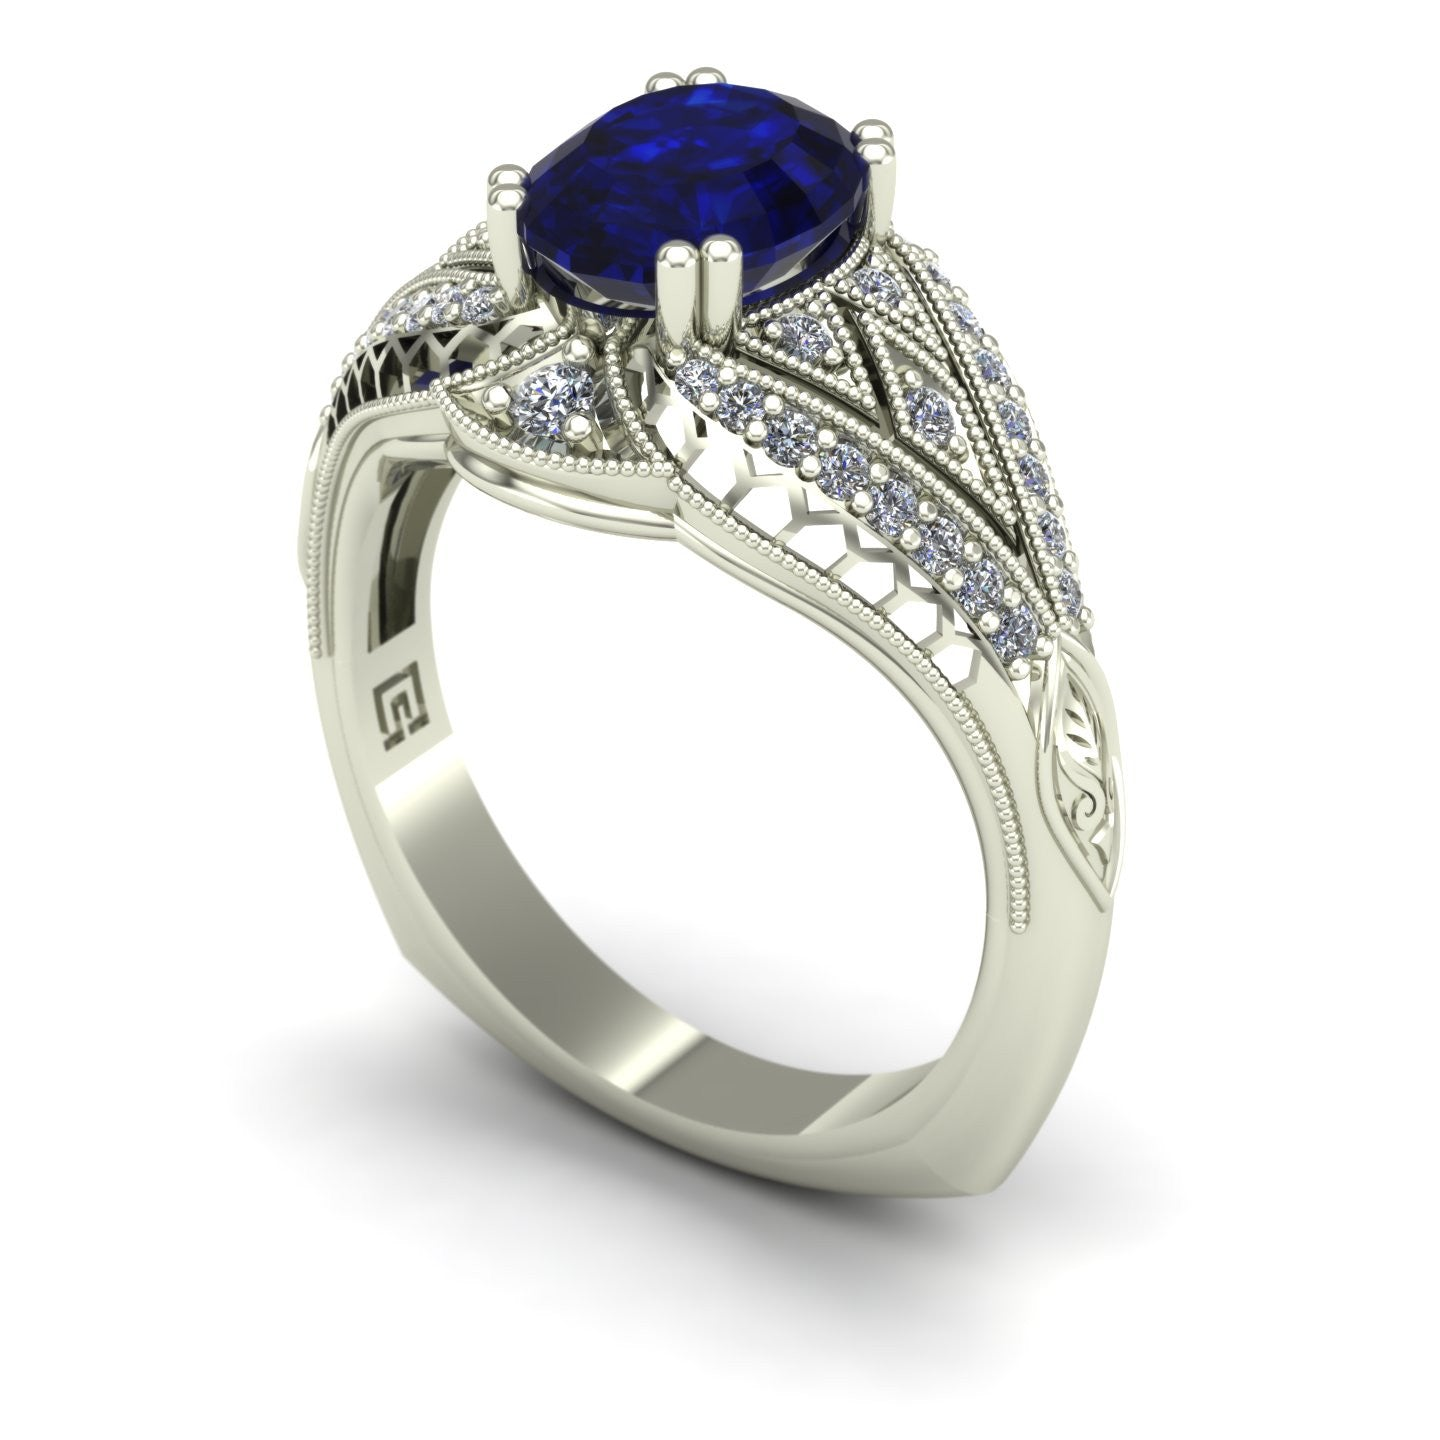 Blue sapphire and diamond vintage inspired ring in 14k white gold